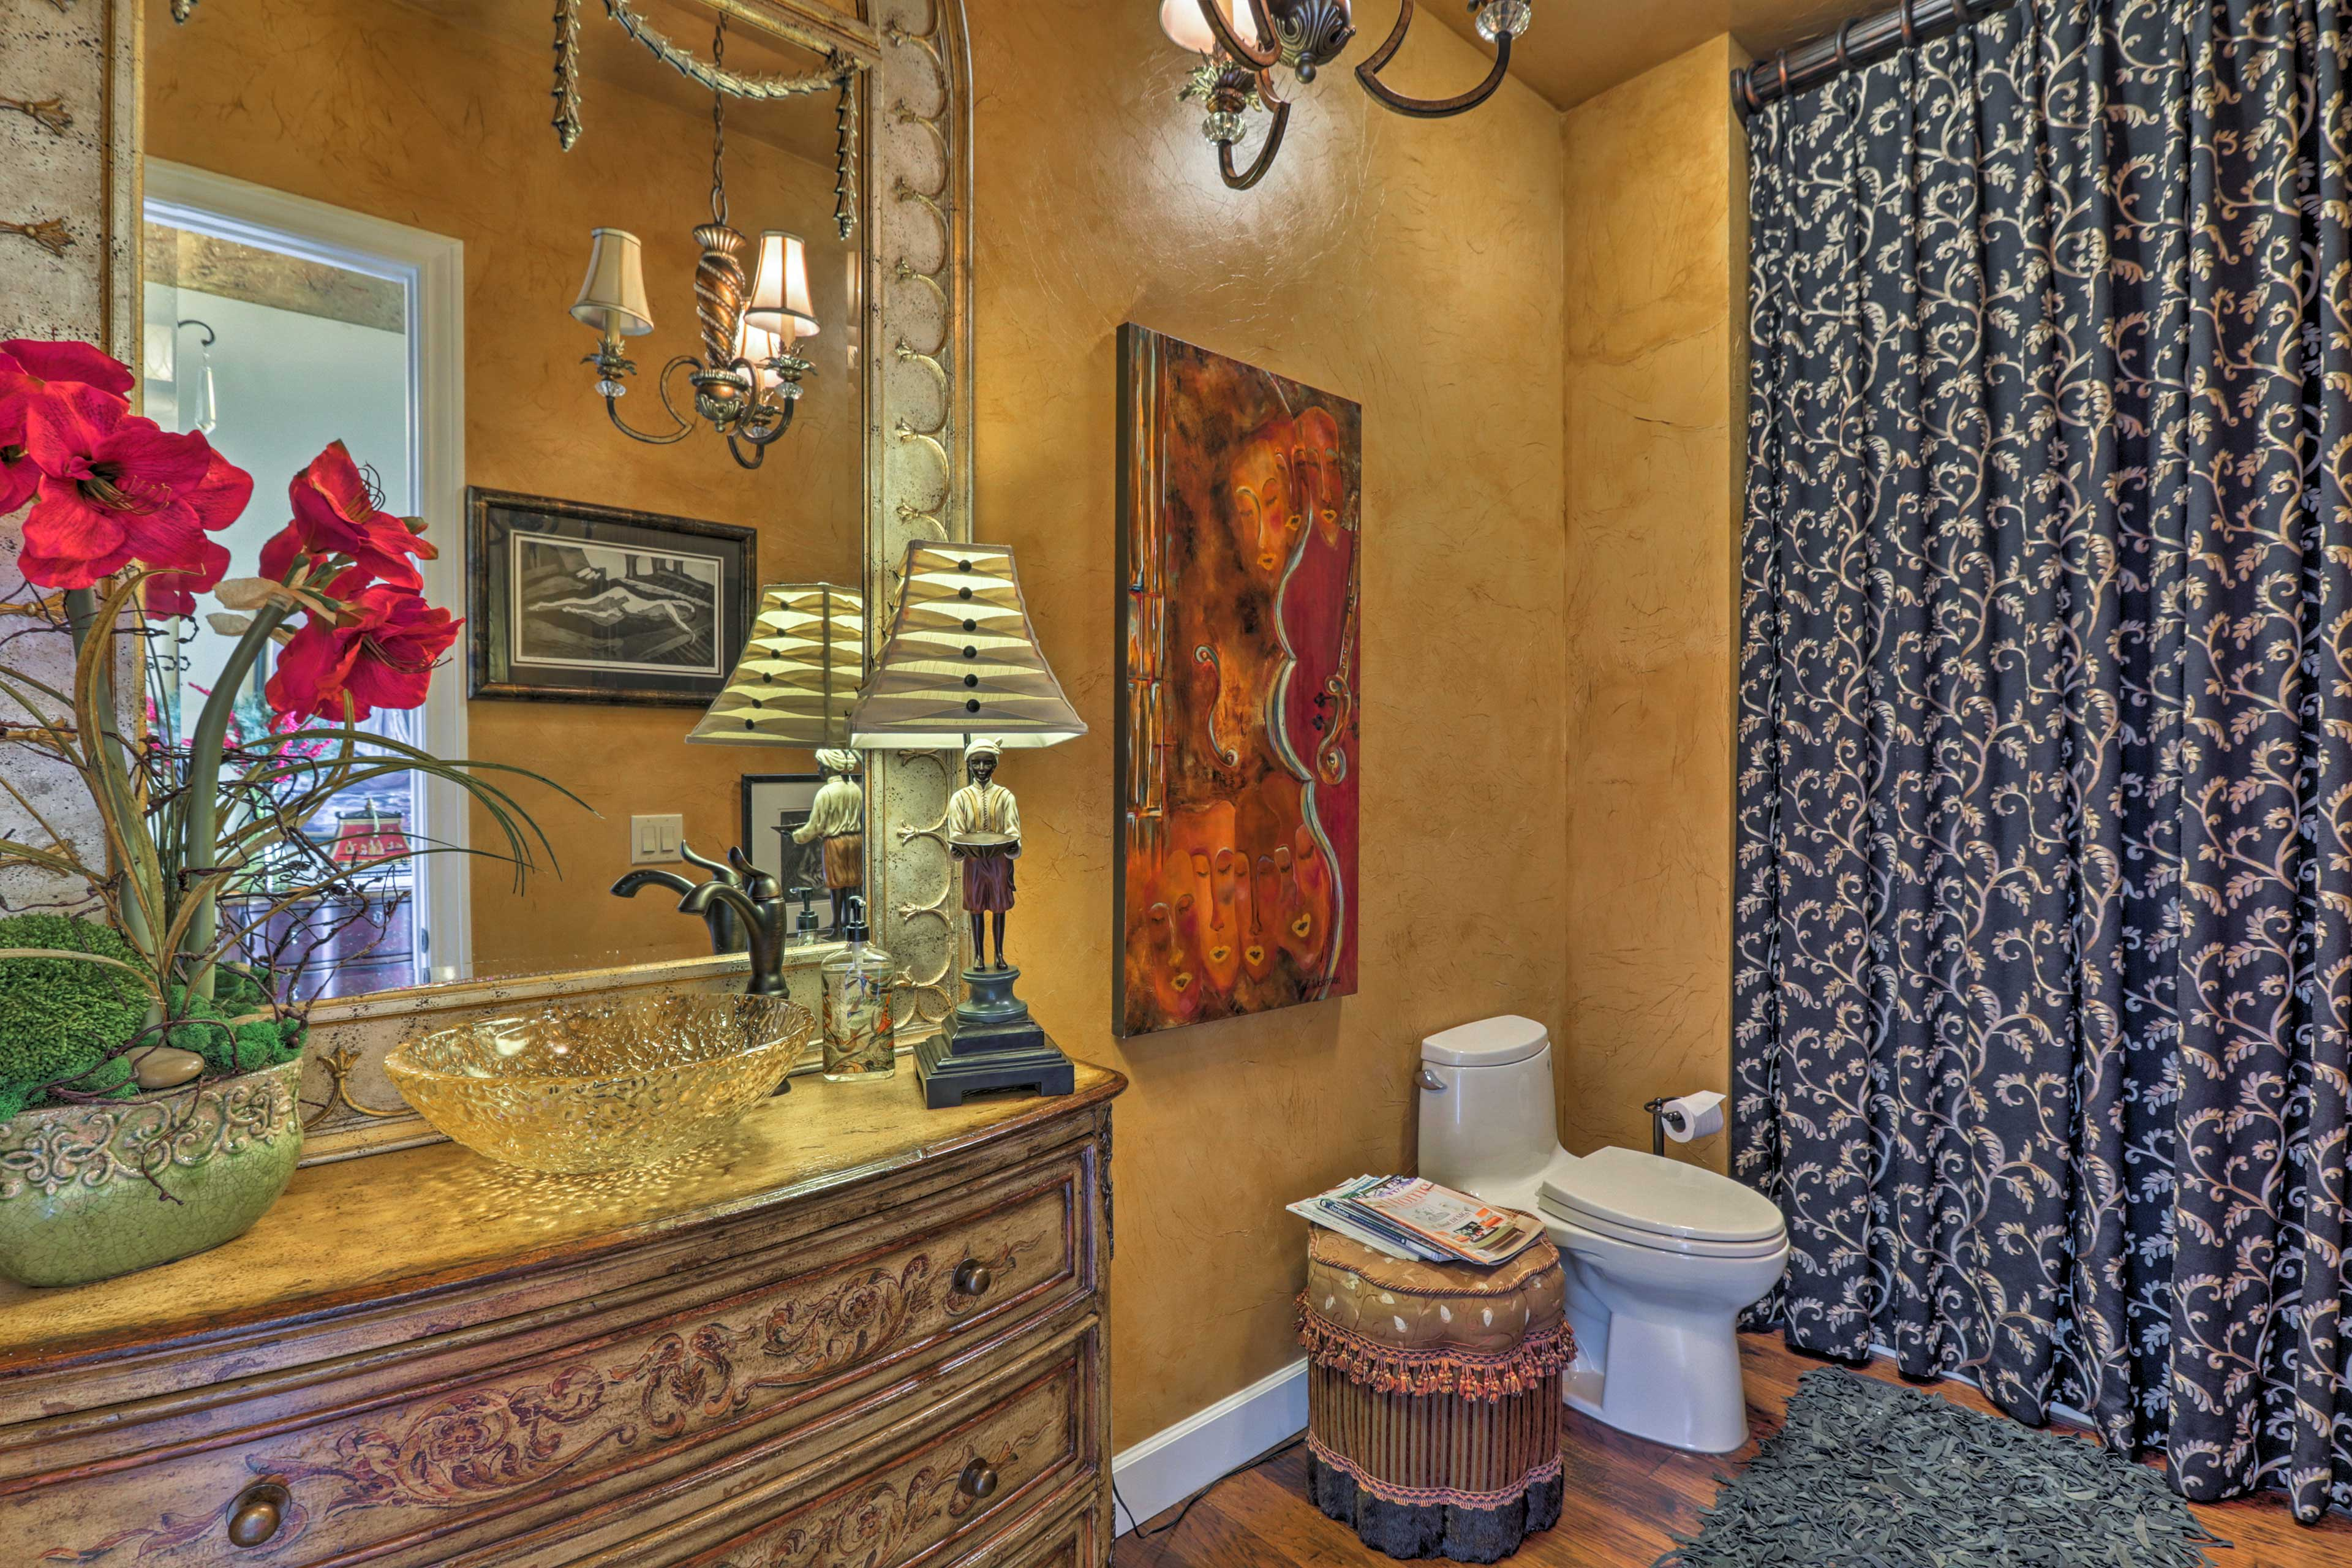 The final bathroom is exquisite and offers a walk-in shower.